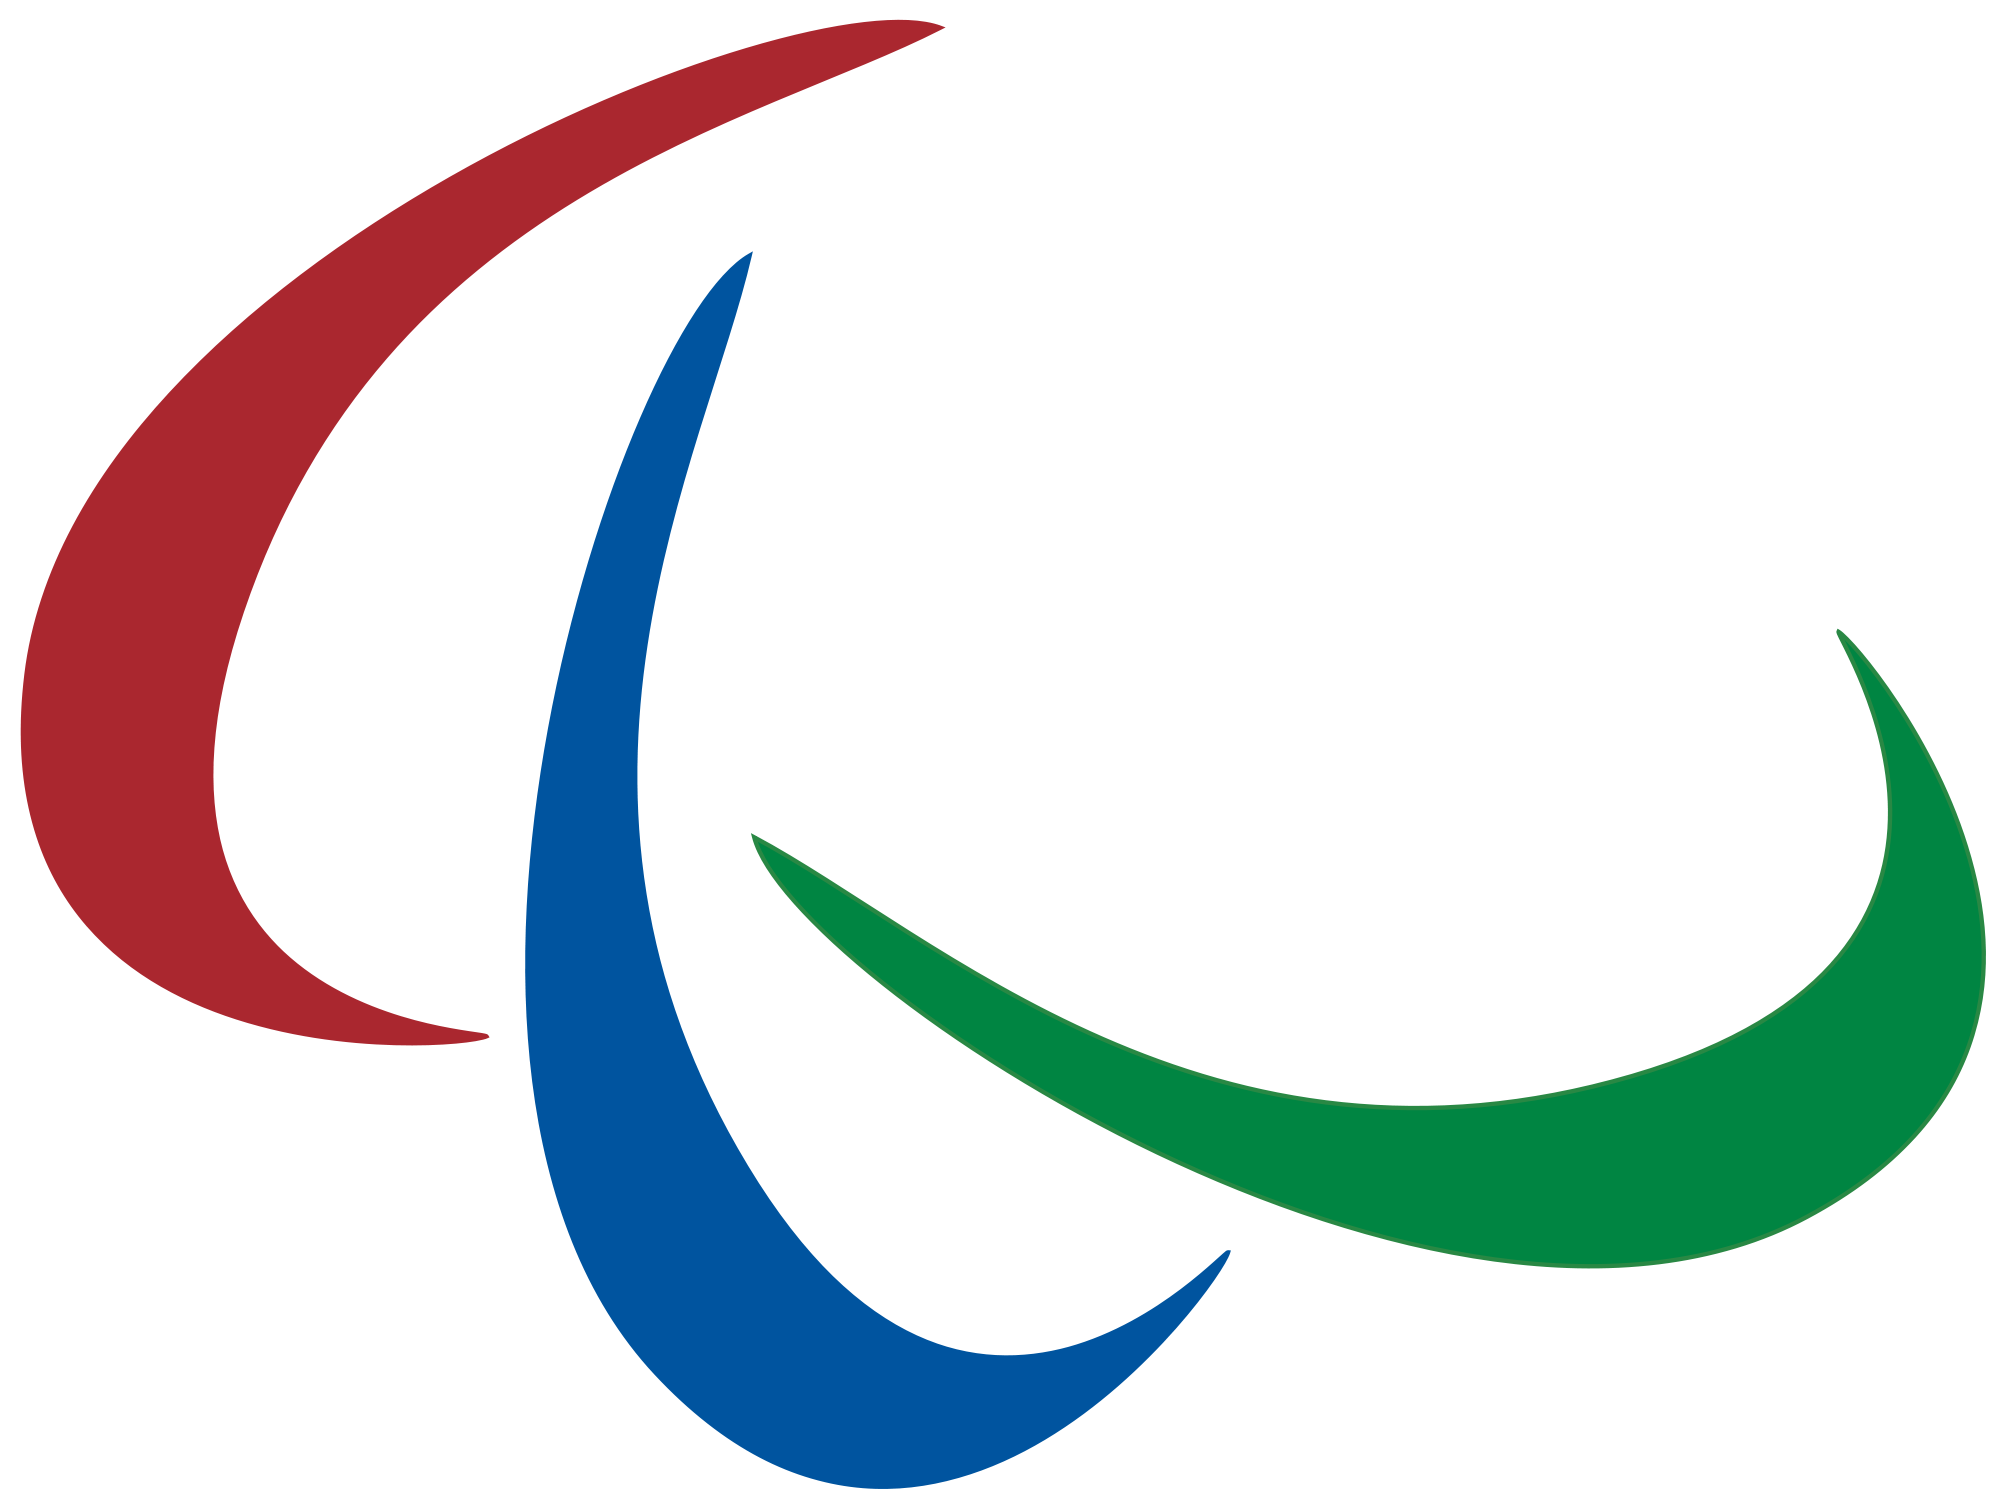 The Paralympic Games Logo